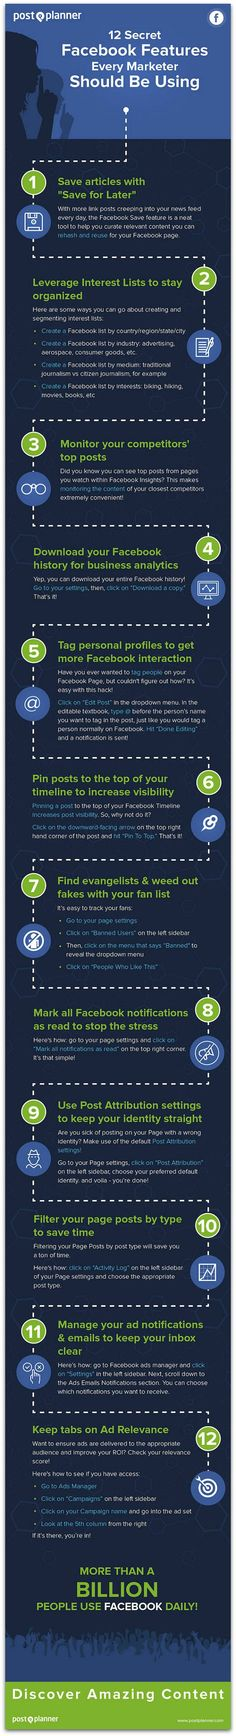 Infographic: 12 Facebook features every marketer should know | Articles | Main